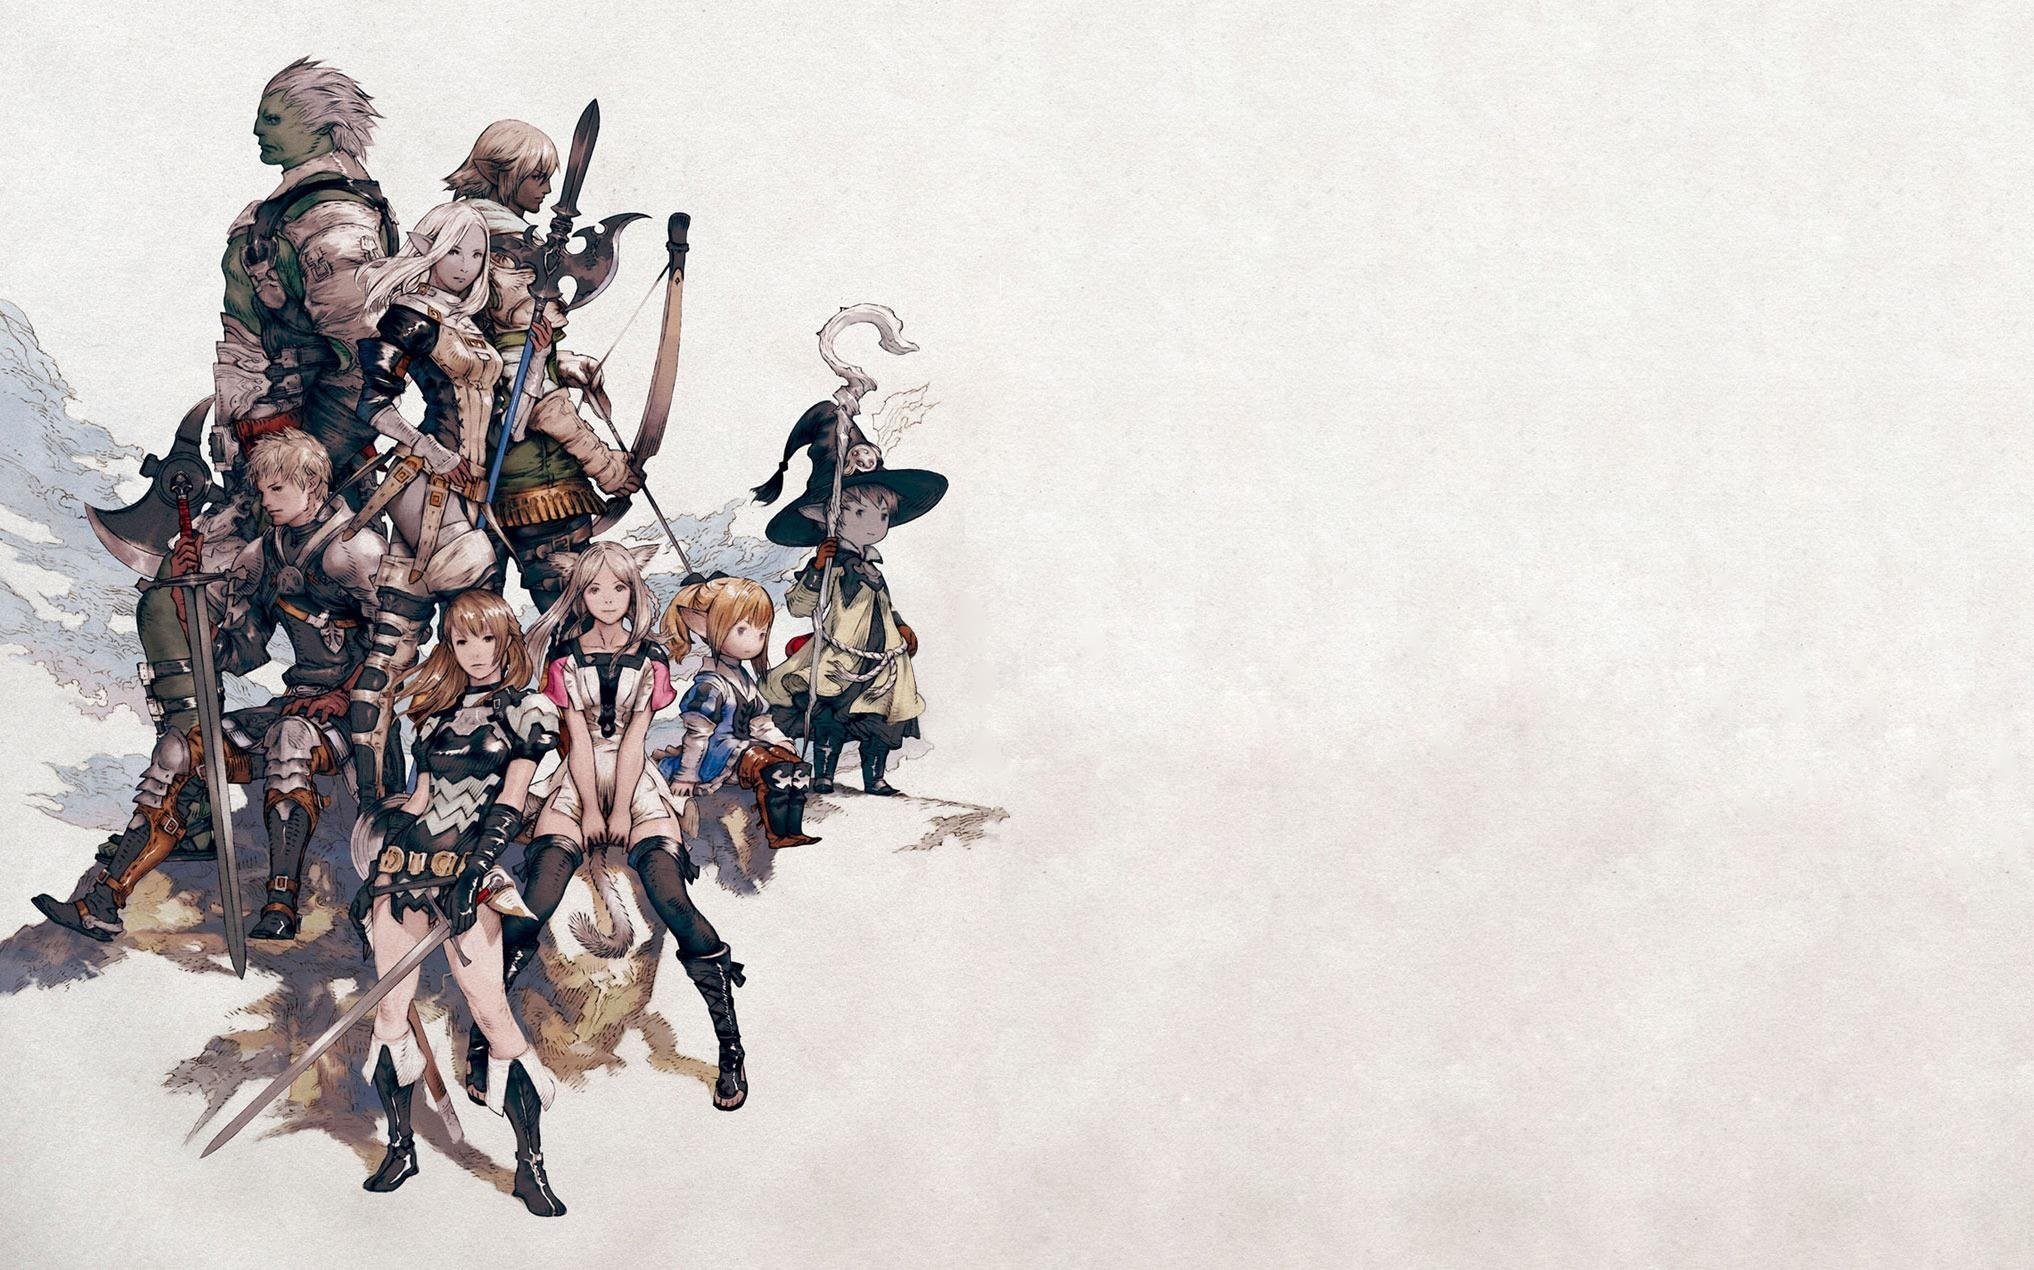 Final Fantasy XIV Wallpaper  MMORPG Photo